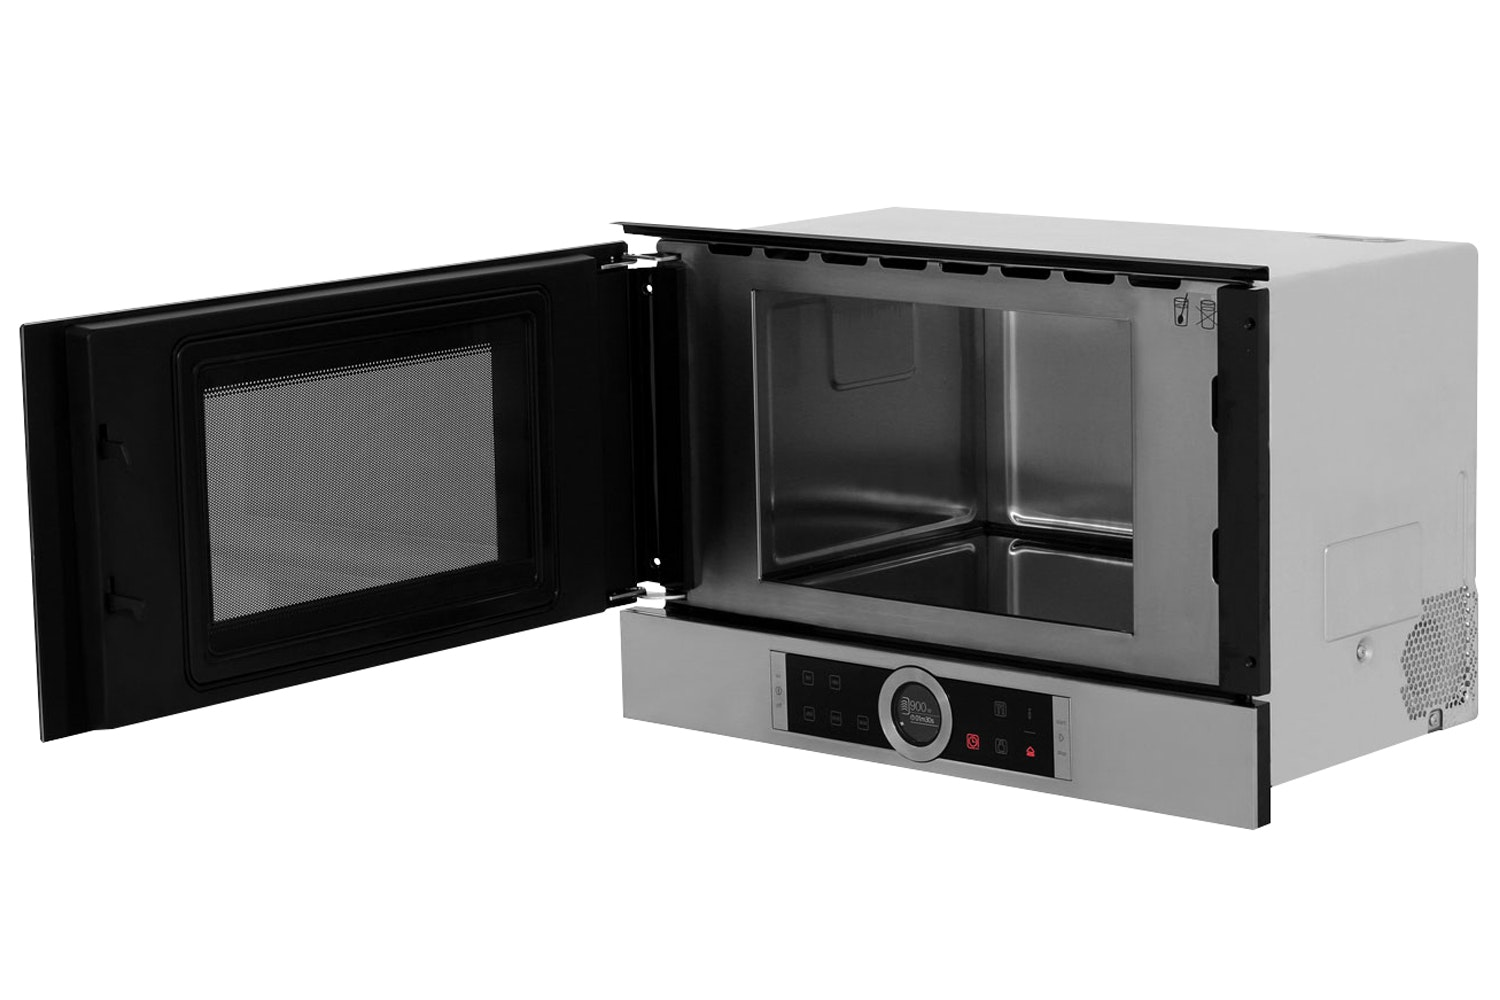 Bosch Series 8 21L 900W Built In Microwave | Black